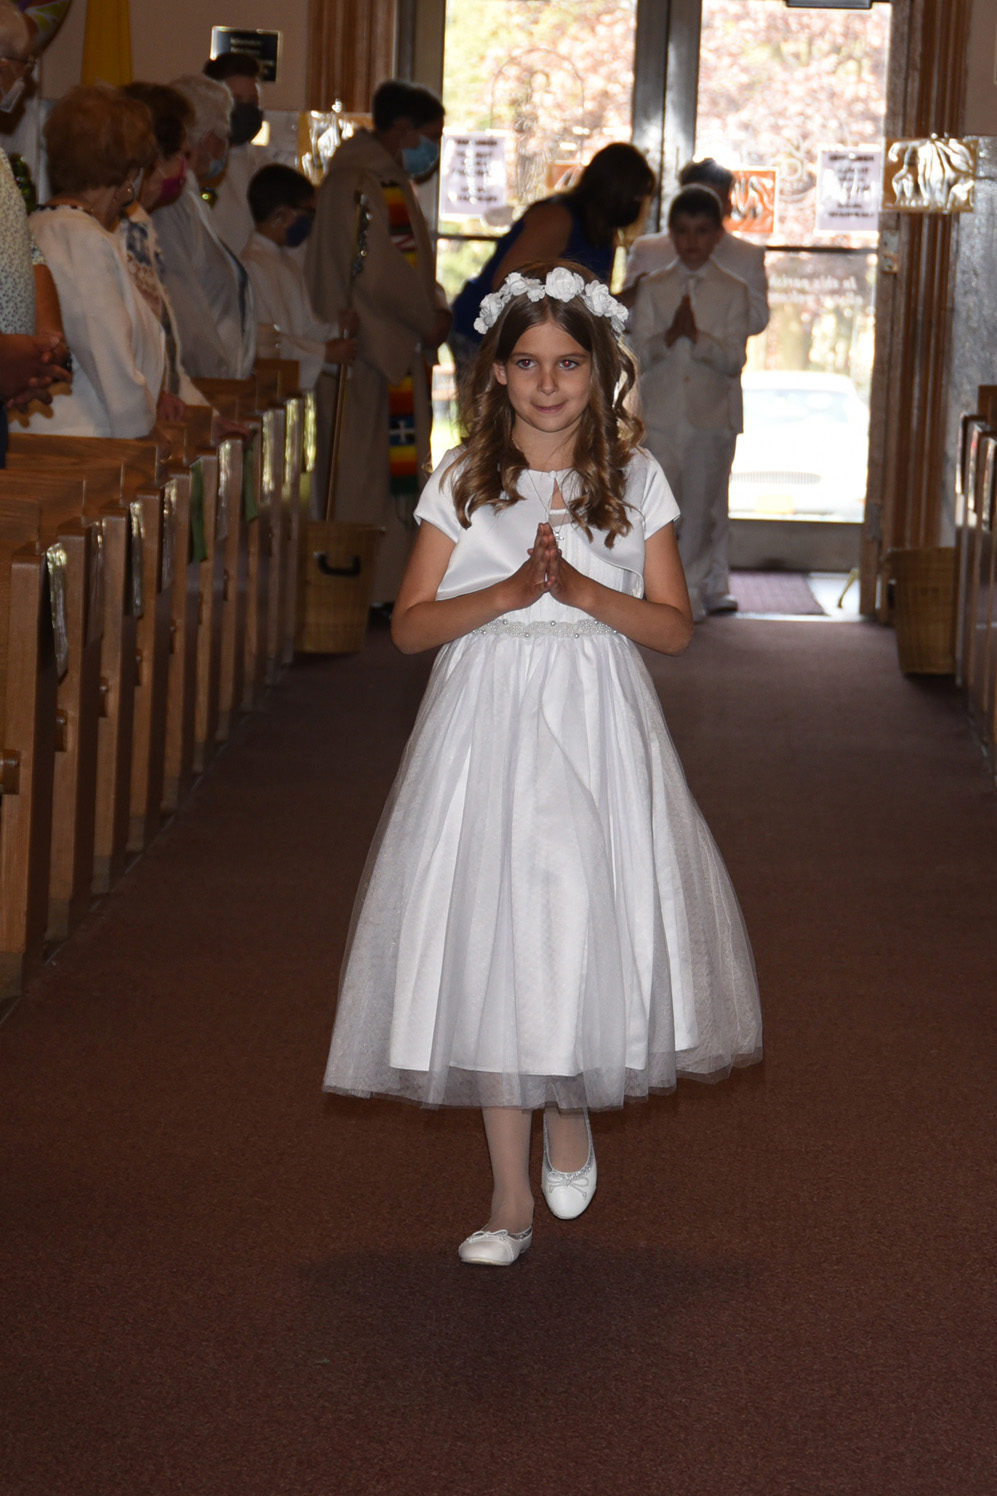 FIRST-COMMUNION-MAY-15-2021-10011057